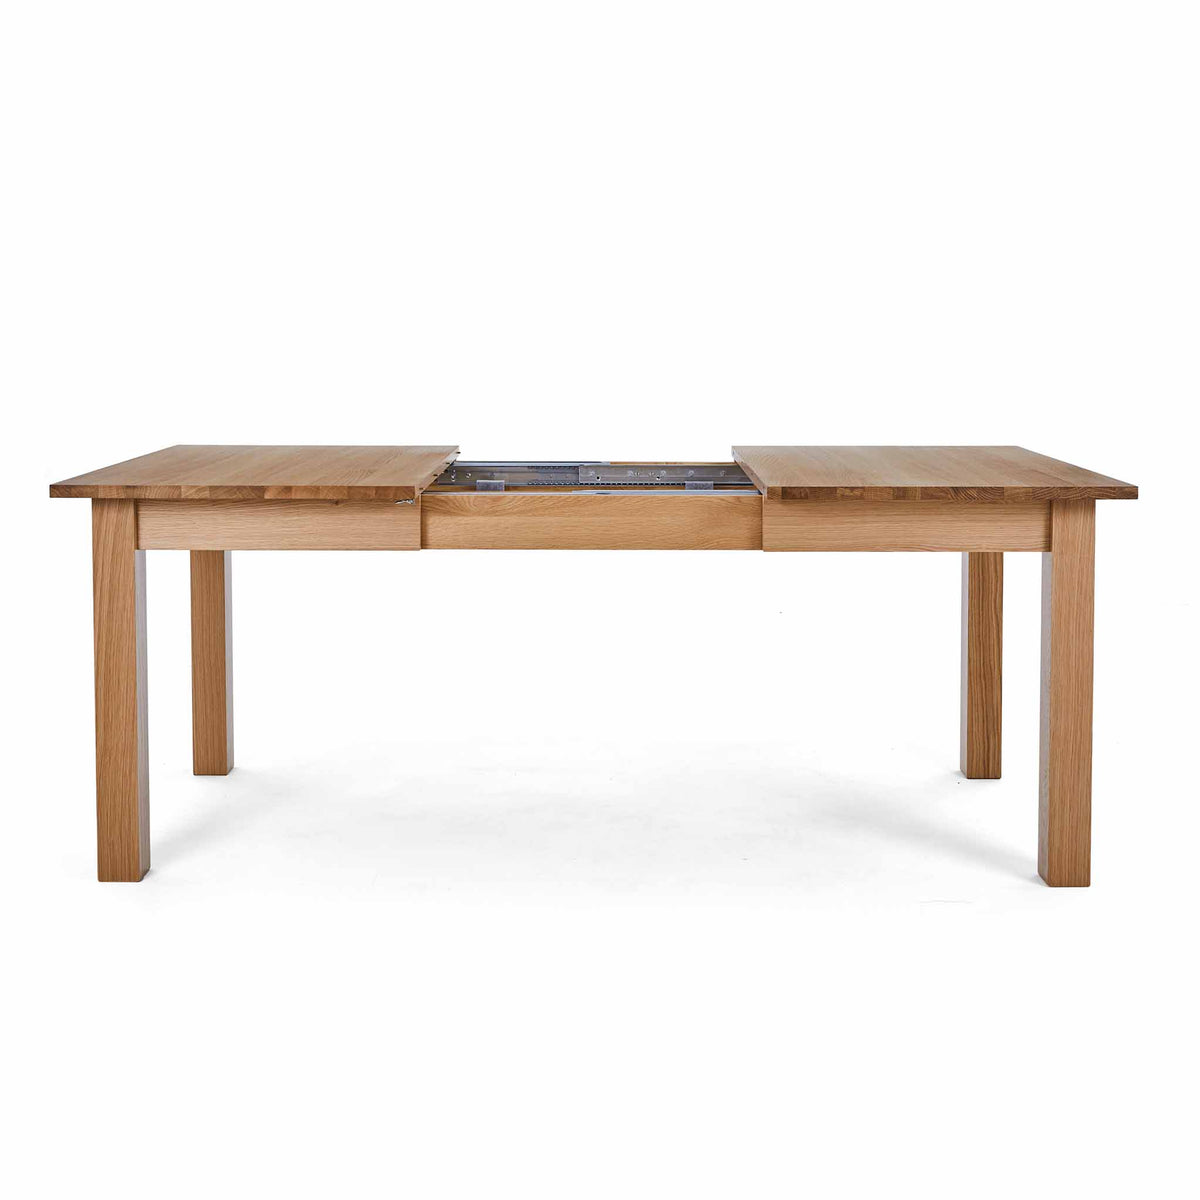 Extended view of the Falmouth Oak Large Extending Dining Table